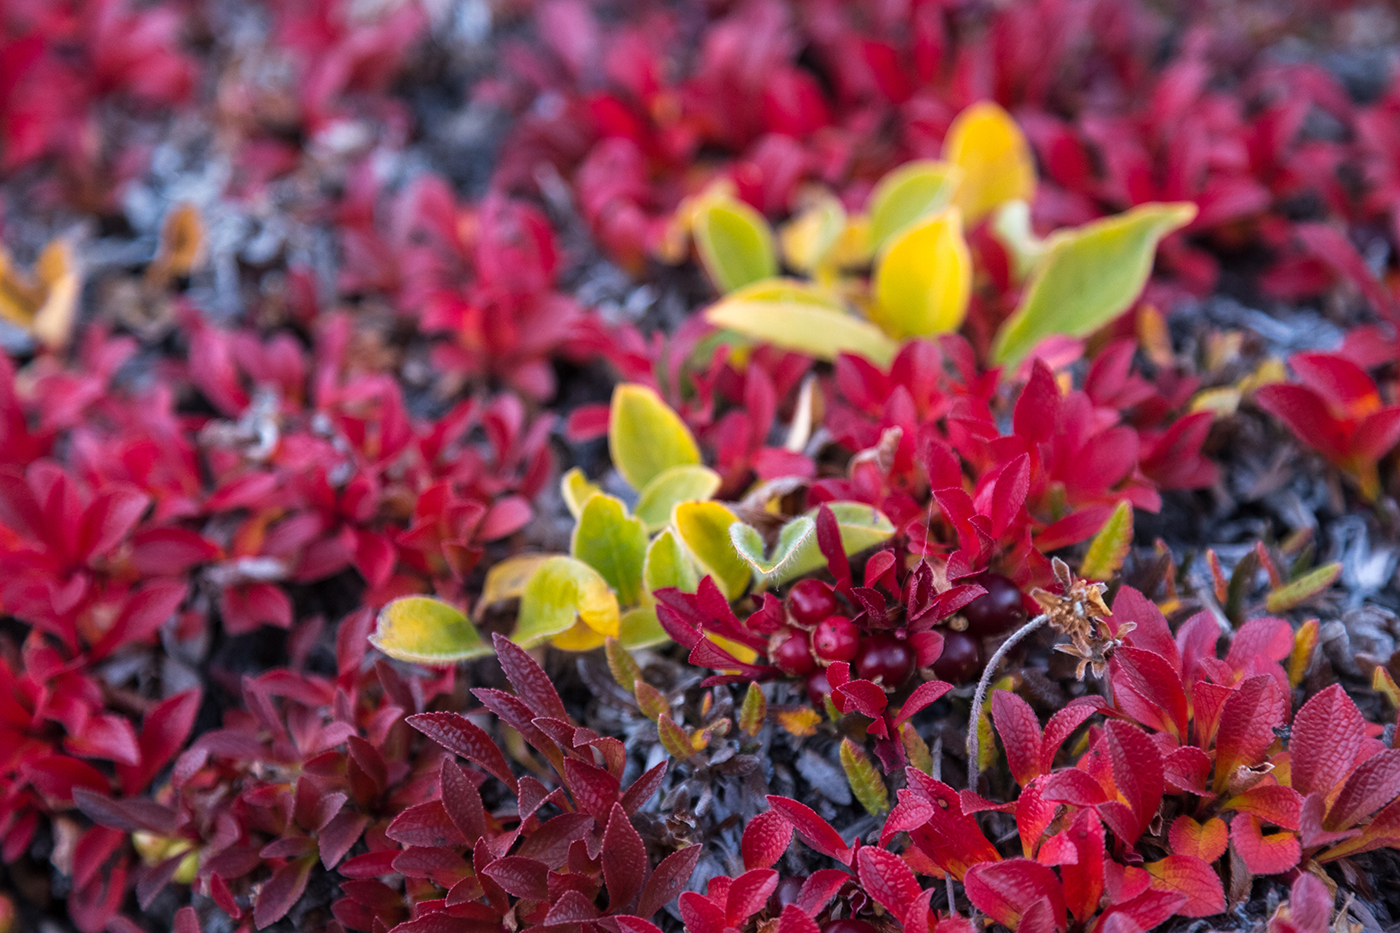 Bearberry spotted at Ella Island, in East Greenland. Photo by Acacia Johnson